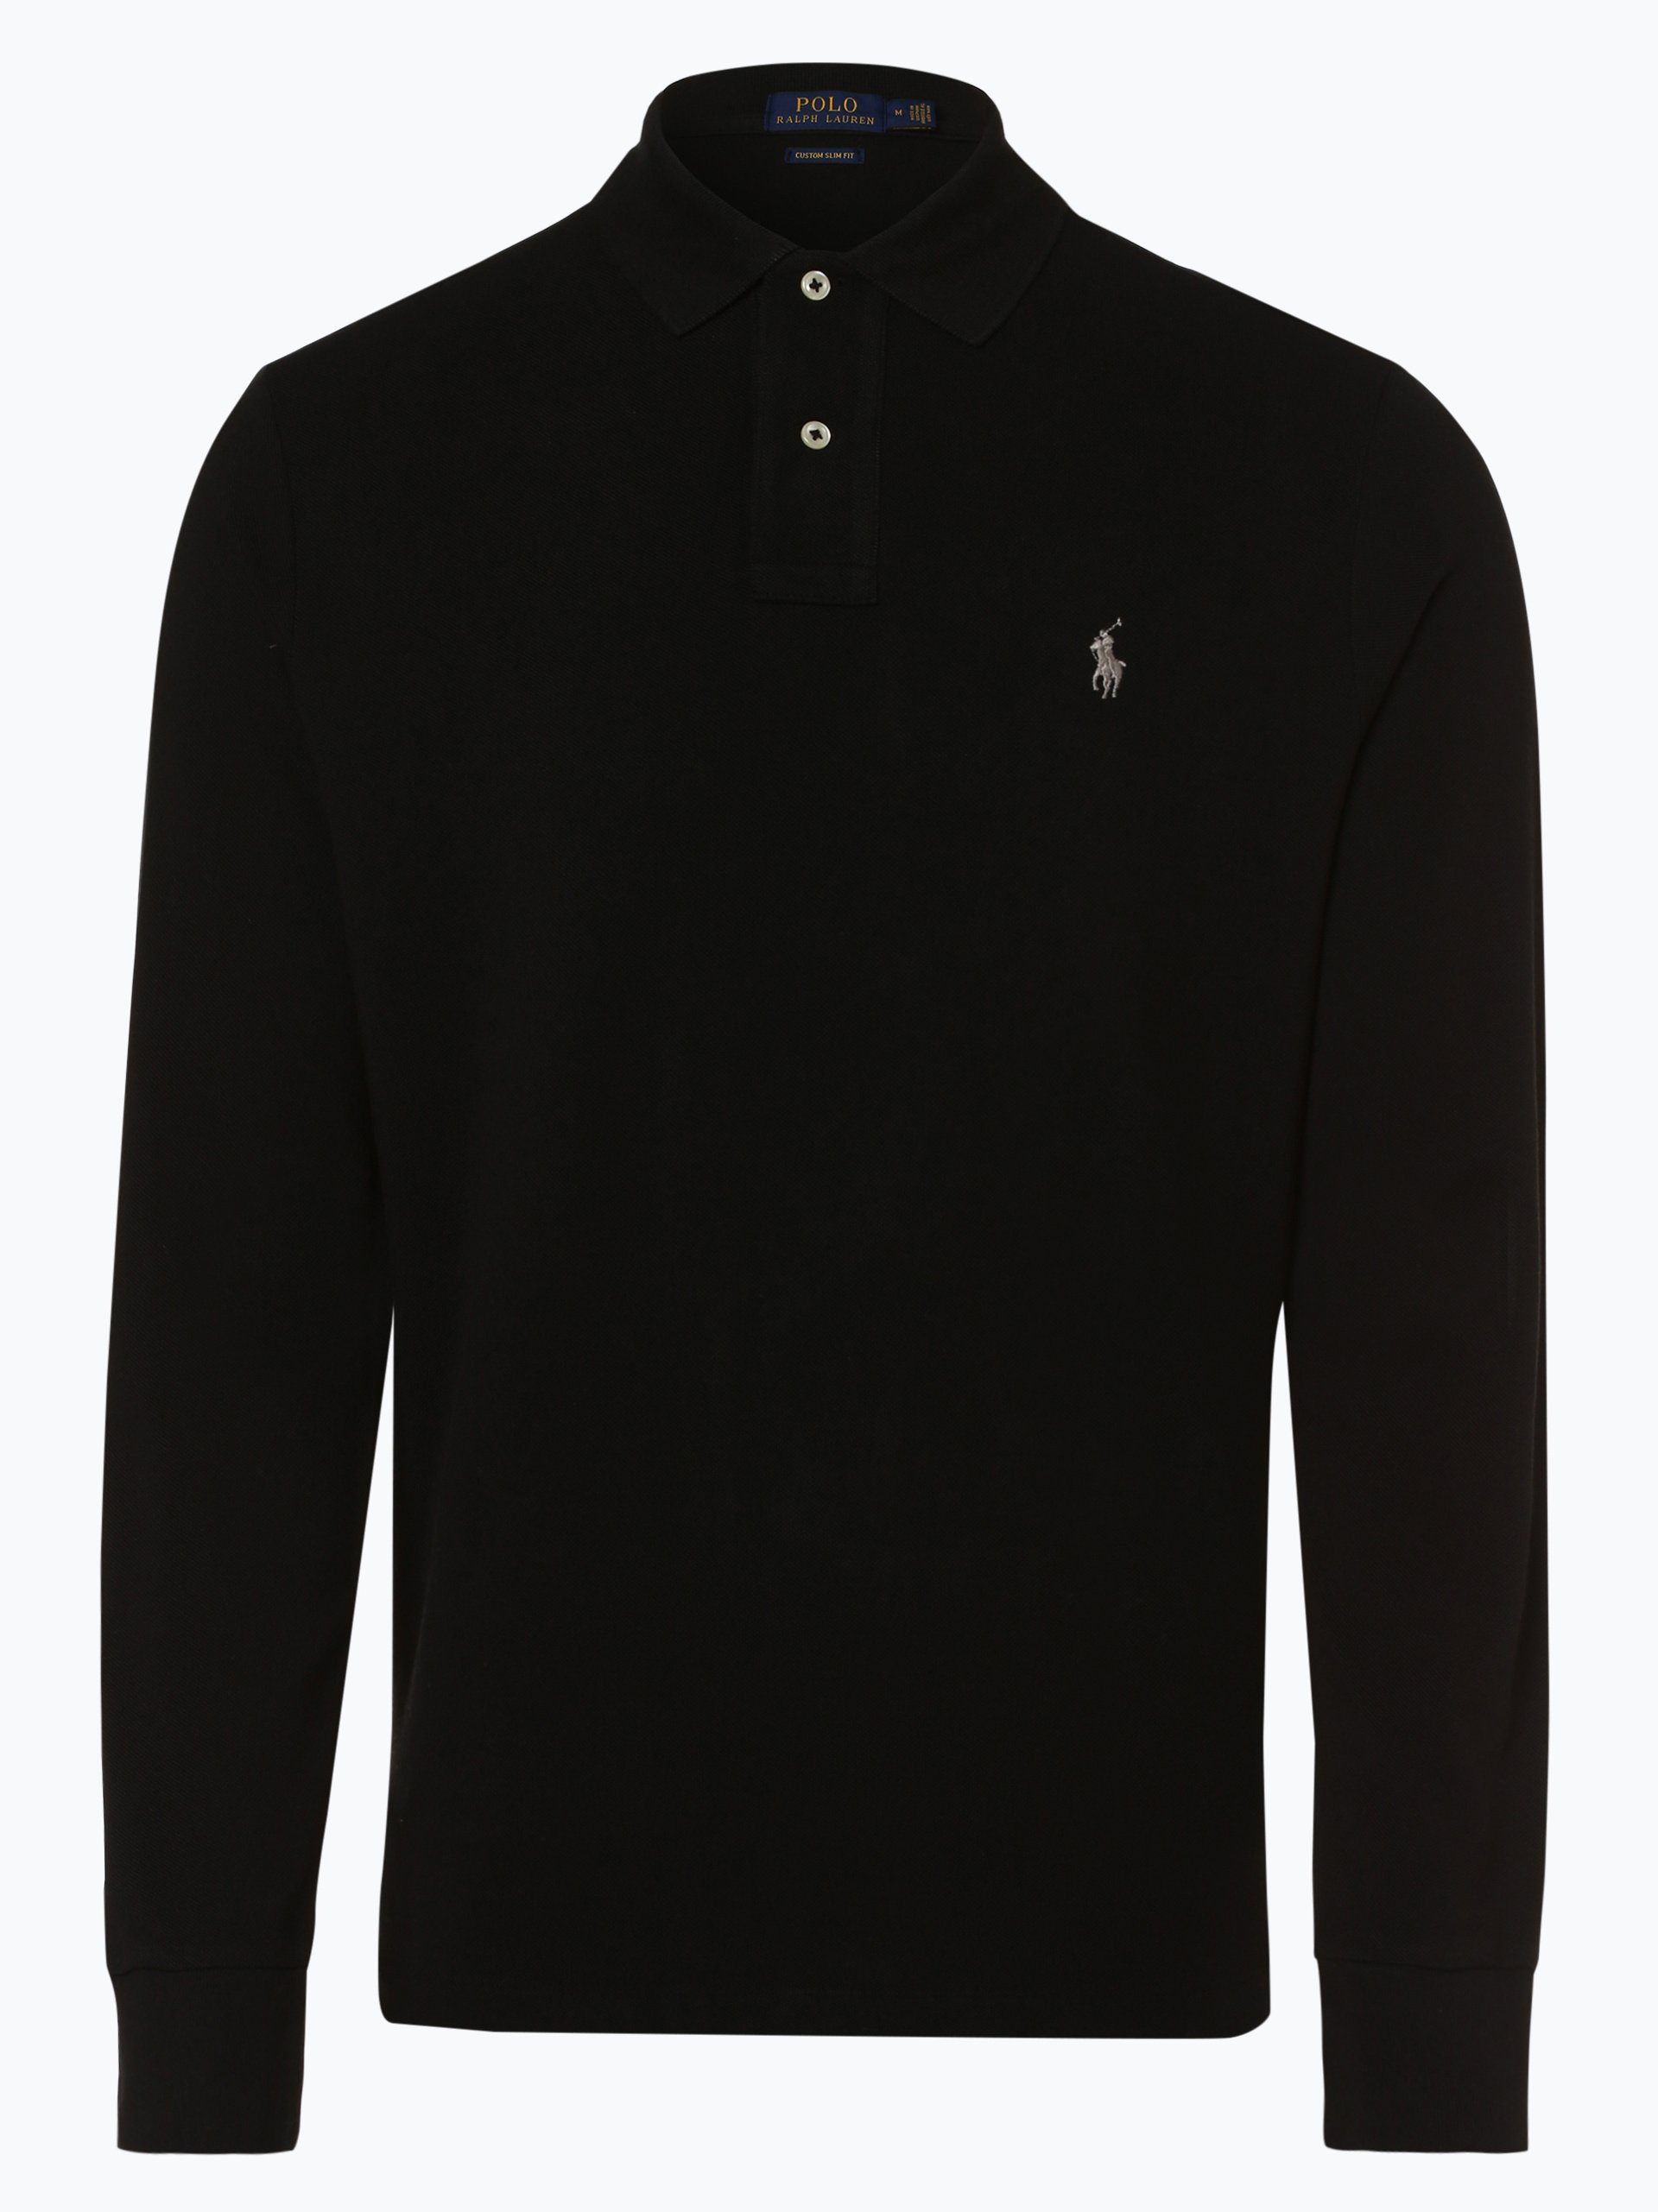 Polo Ralph Lauren Herren Poloshirt - Custom Slim Fit